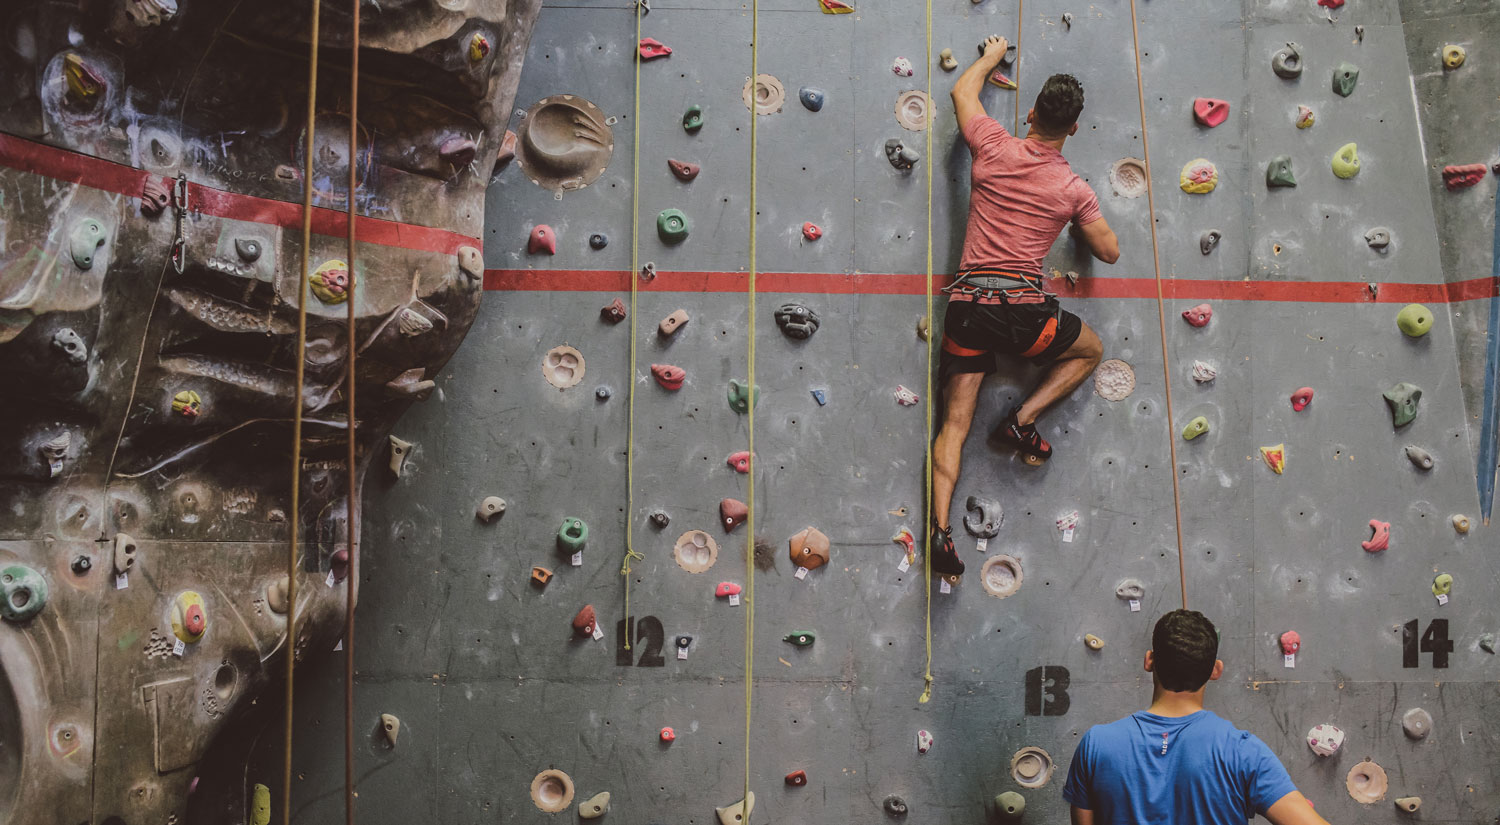 Two people climbing a climbing wall, one on the wall, the other guiding from below.